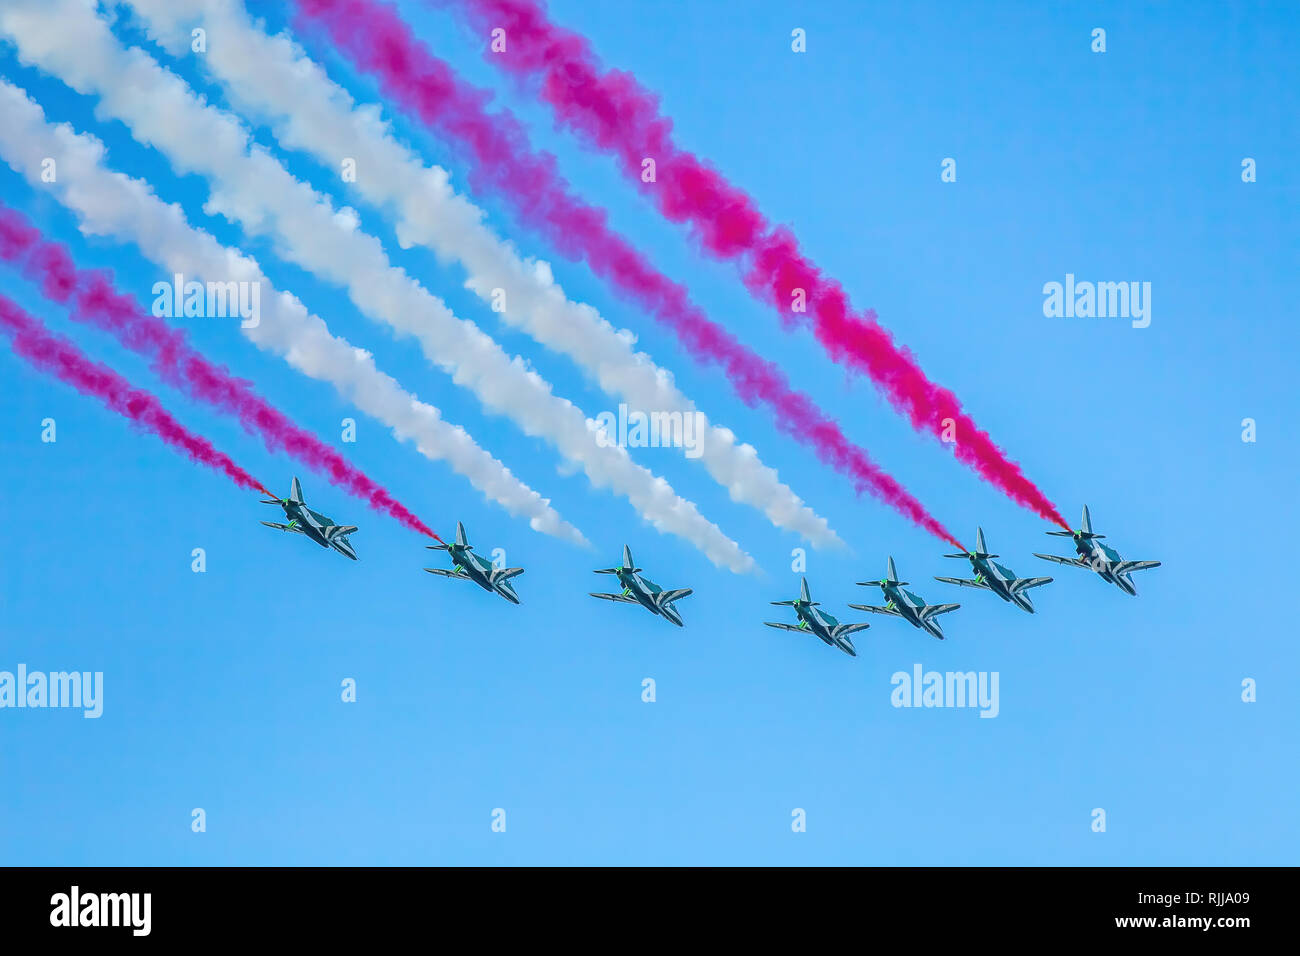 Abu Dhabi, United Arab Emirates, December 2, 2016: Al Fursan aerobatics team fly past in formation on National Day. Stock Photo